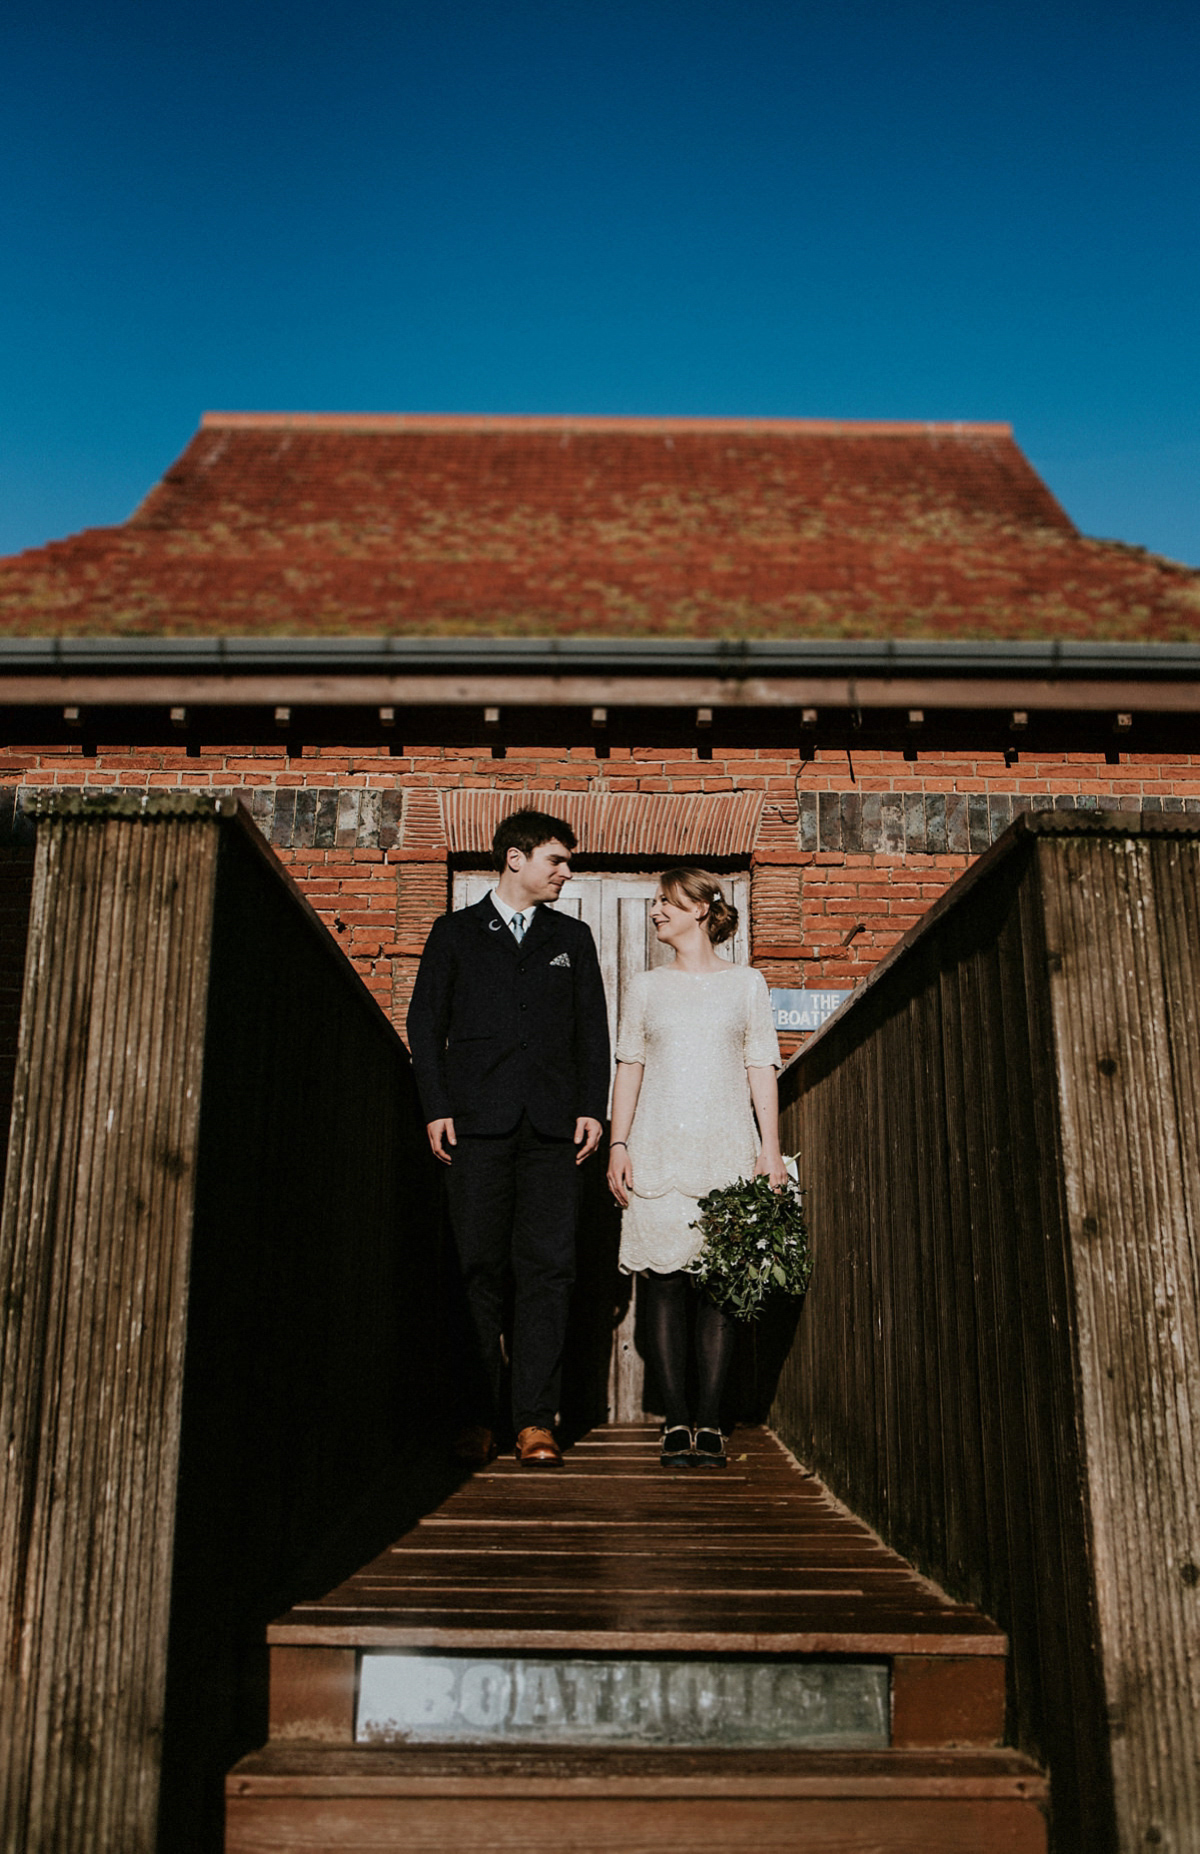 A 1920's Vintage dress for an Intimate Wedding in Whitby (Weddings )